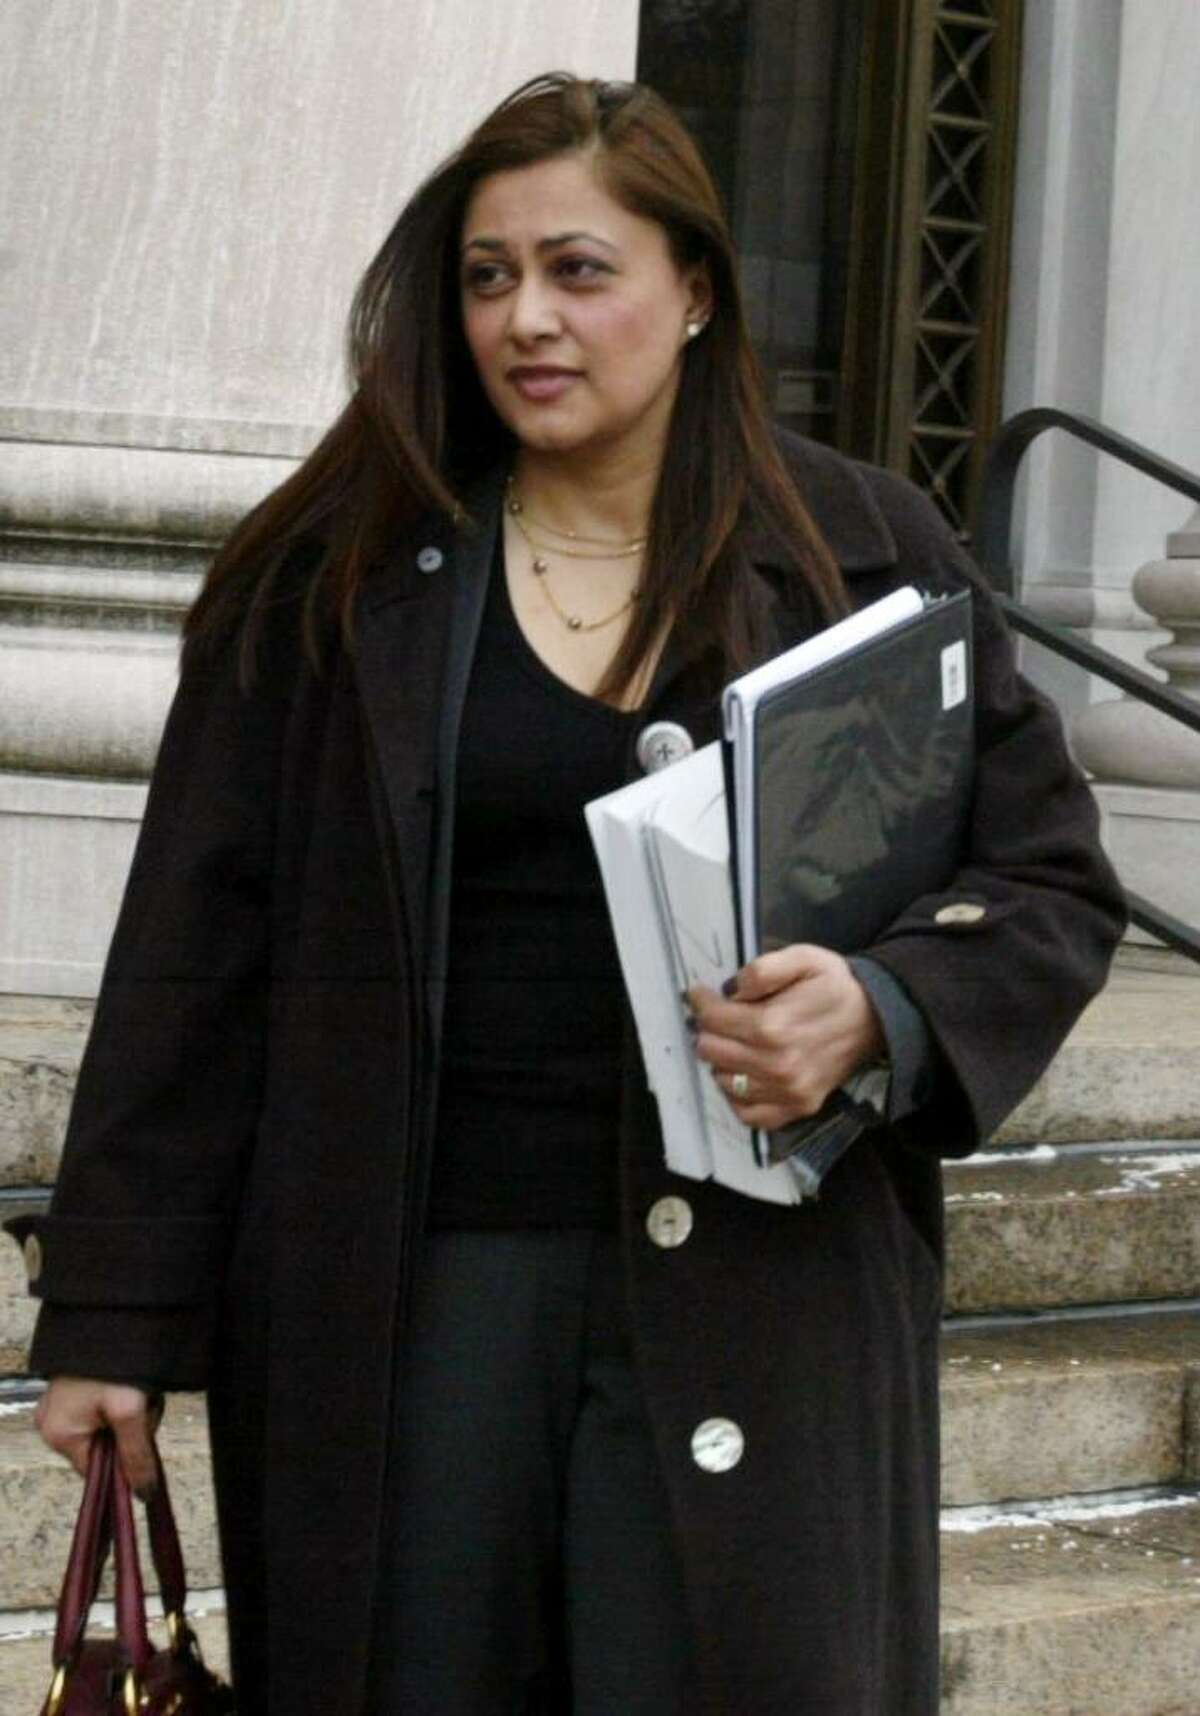 Assistant U.S. Attorney Krishna Patel, leaving the Federal Courthouse in New Haven on Feb. 2, 2010. Patel has developed an expertise in sexploitation cases.